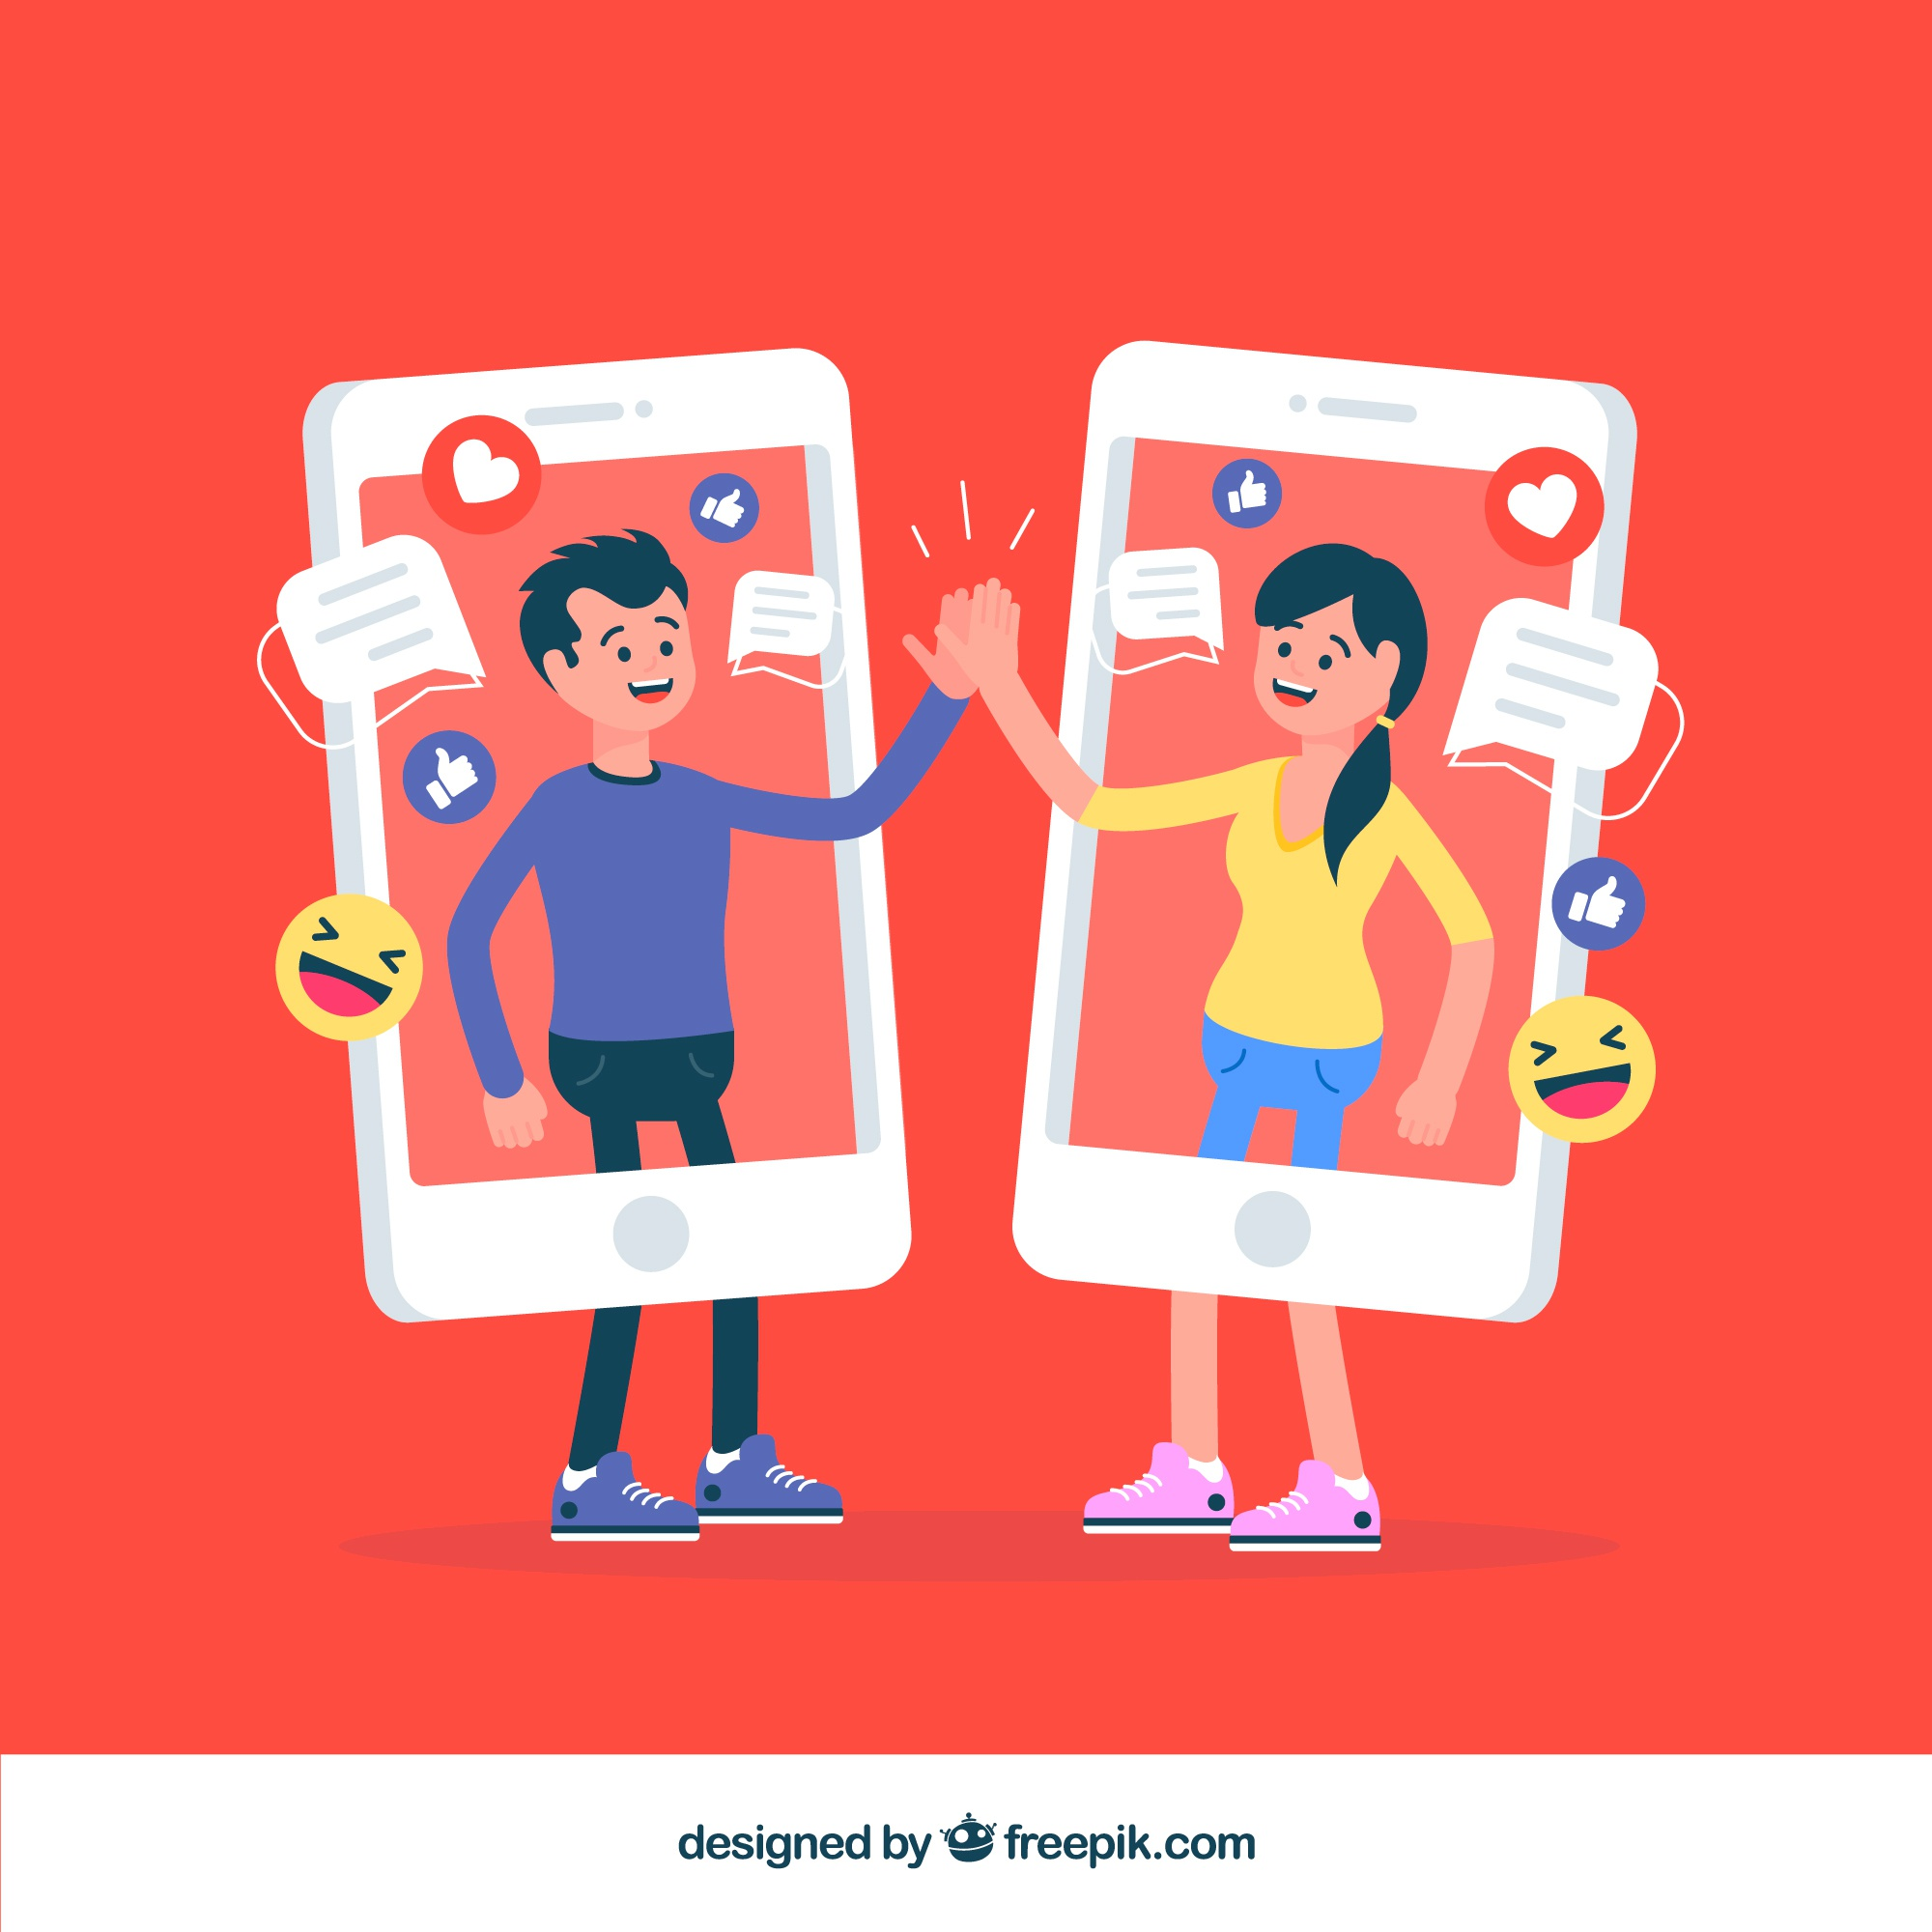 Facebook interaction background with mobile costumes